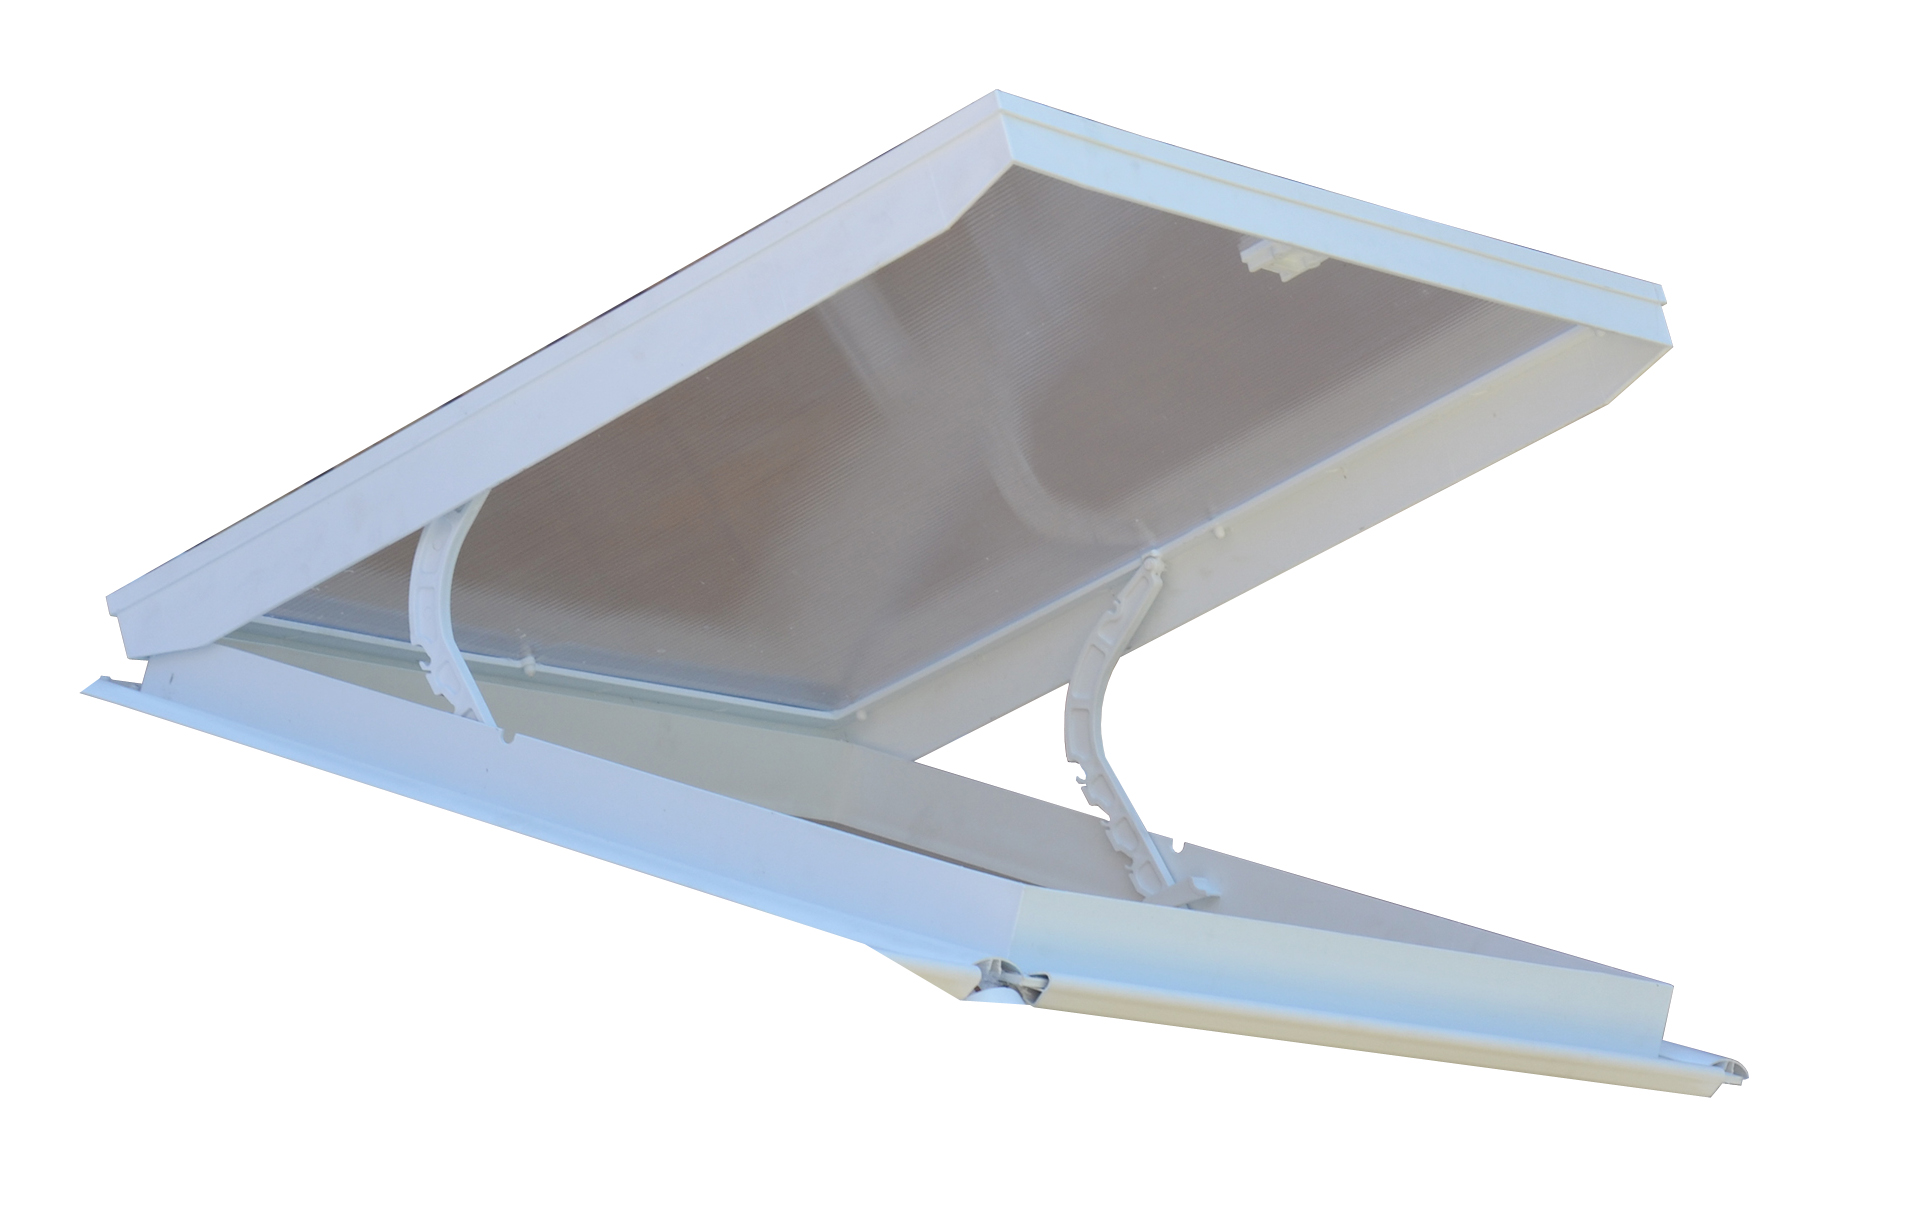 Roof Vent Kit - Sun Room 2